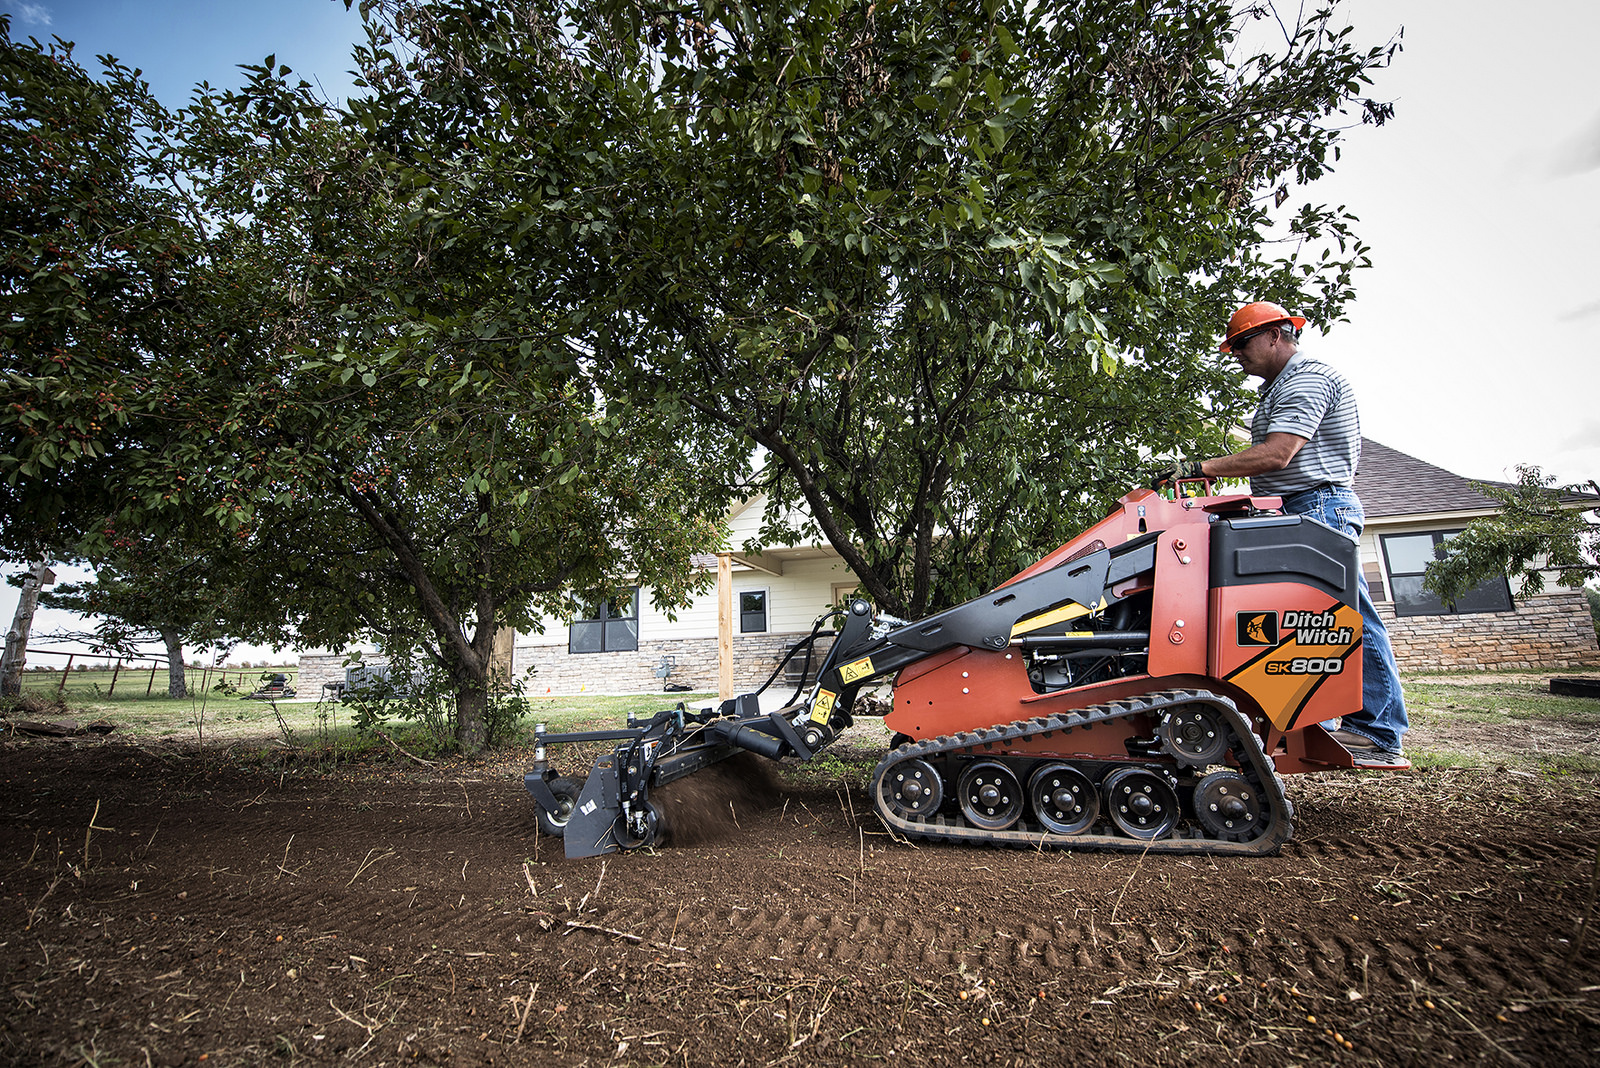 Ditch Witch Brings Skid Steer, Trencher to the Rental Show